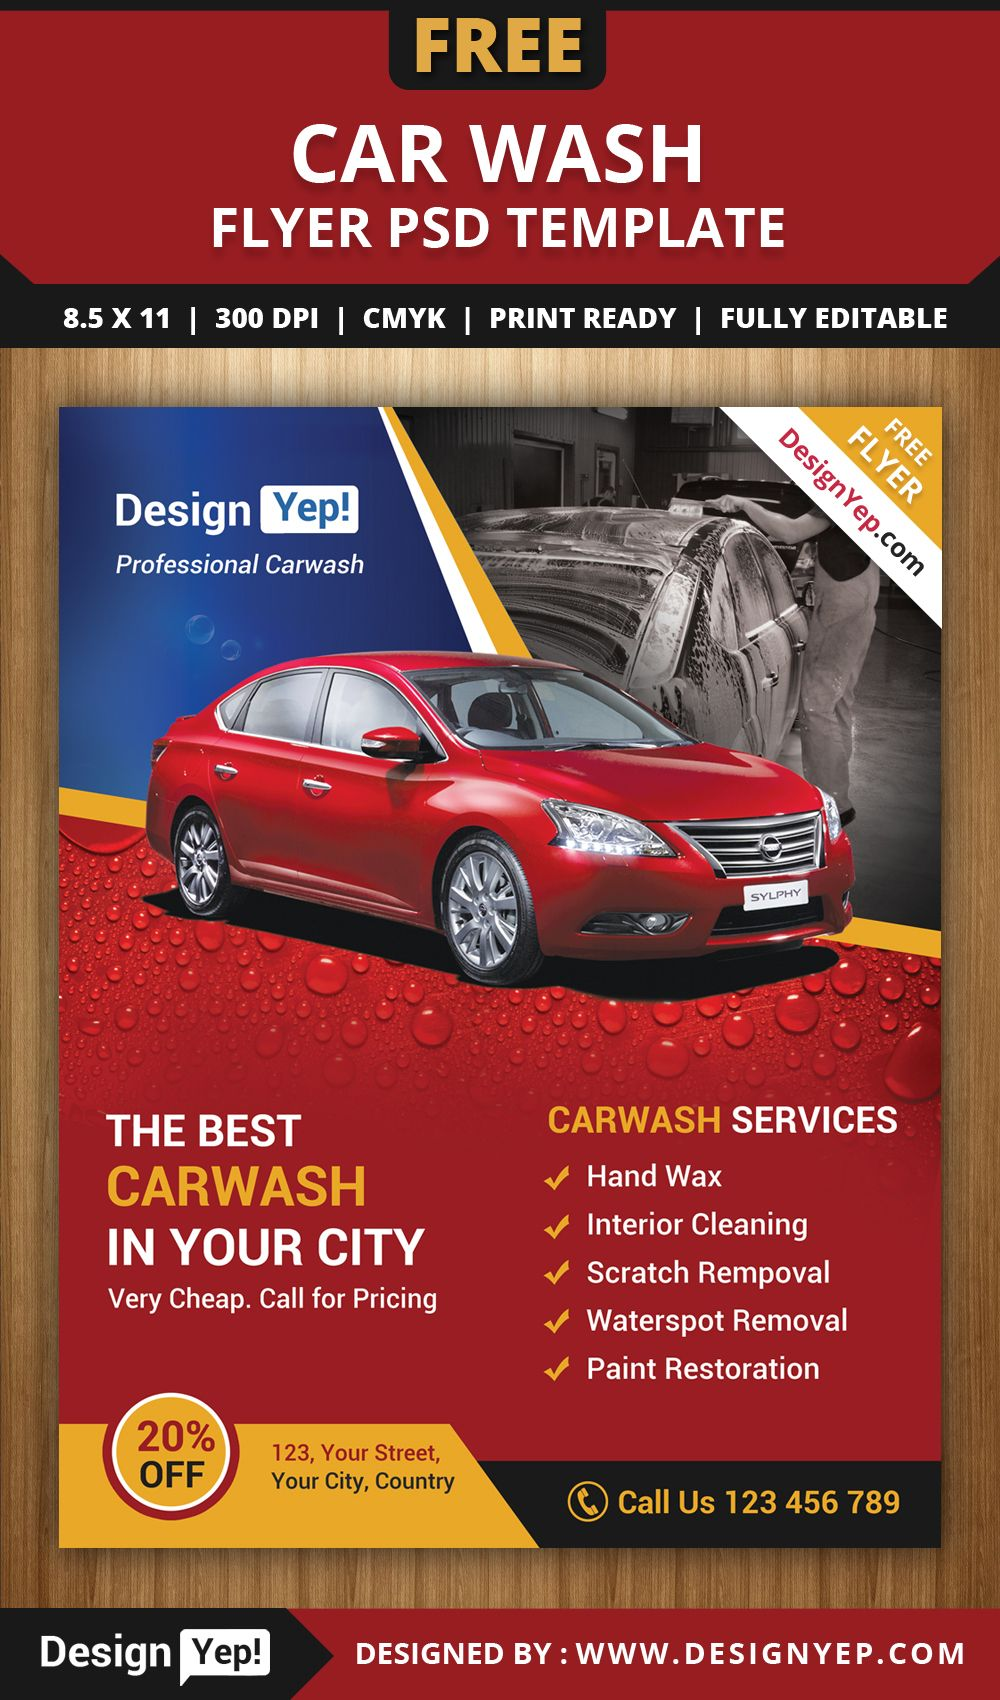 Free car wash flyer psd template 3232 designyep free for Car brochure template